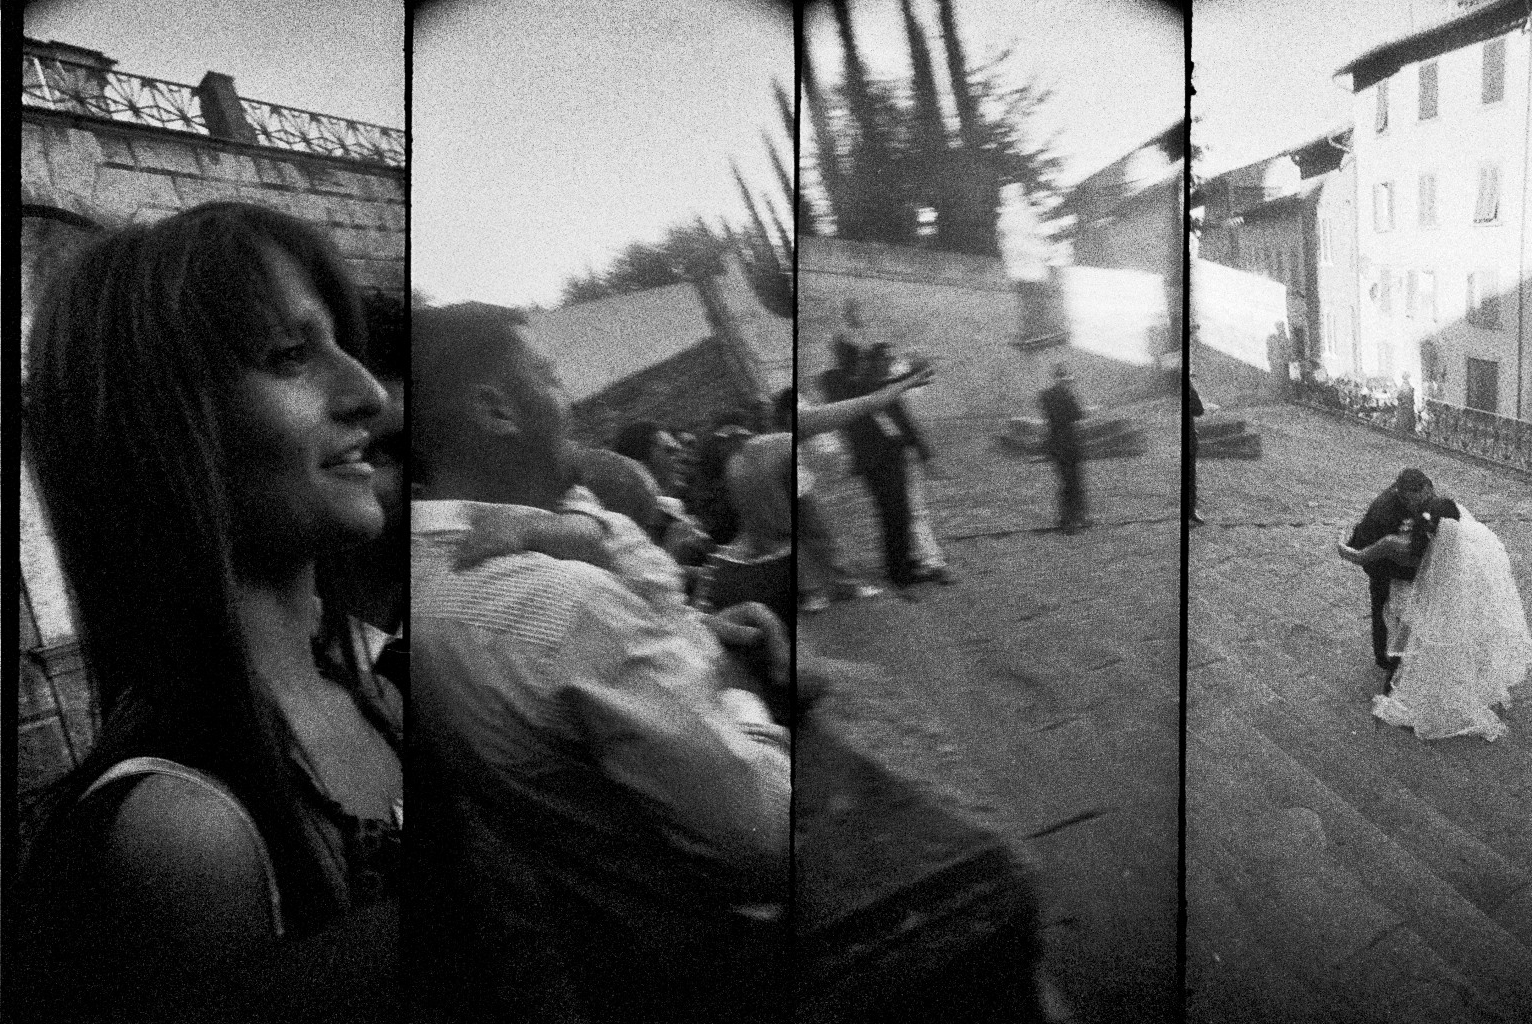 Lomo super sampler: Matrimoni!